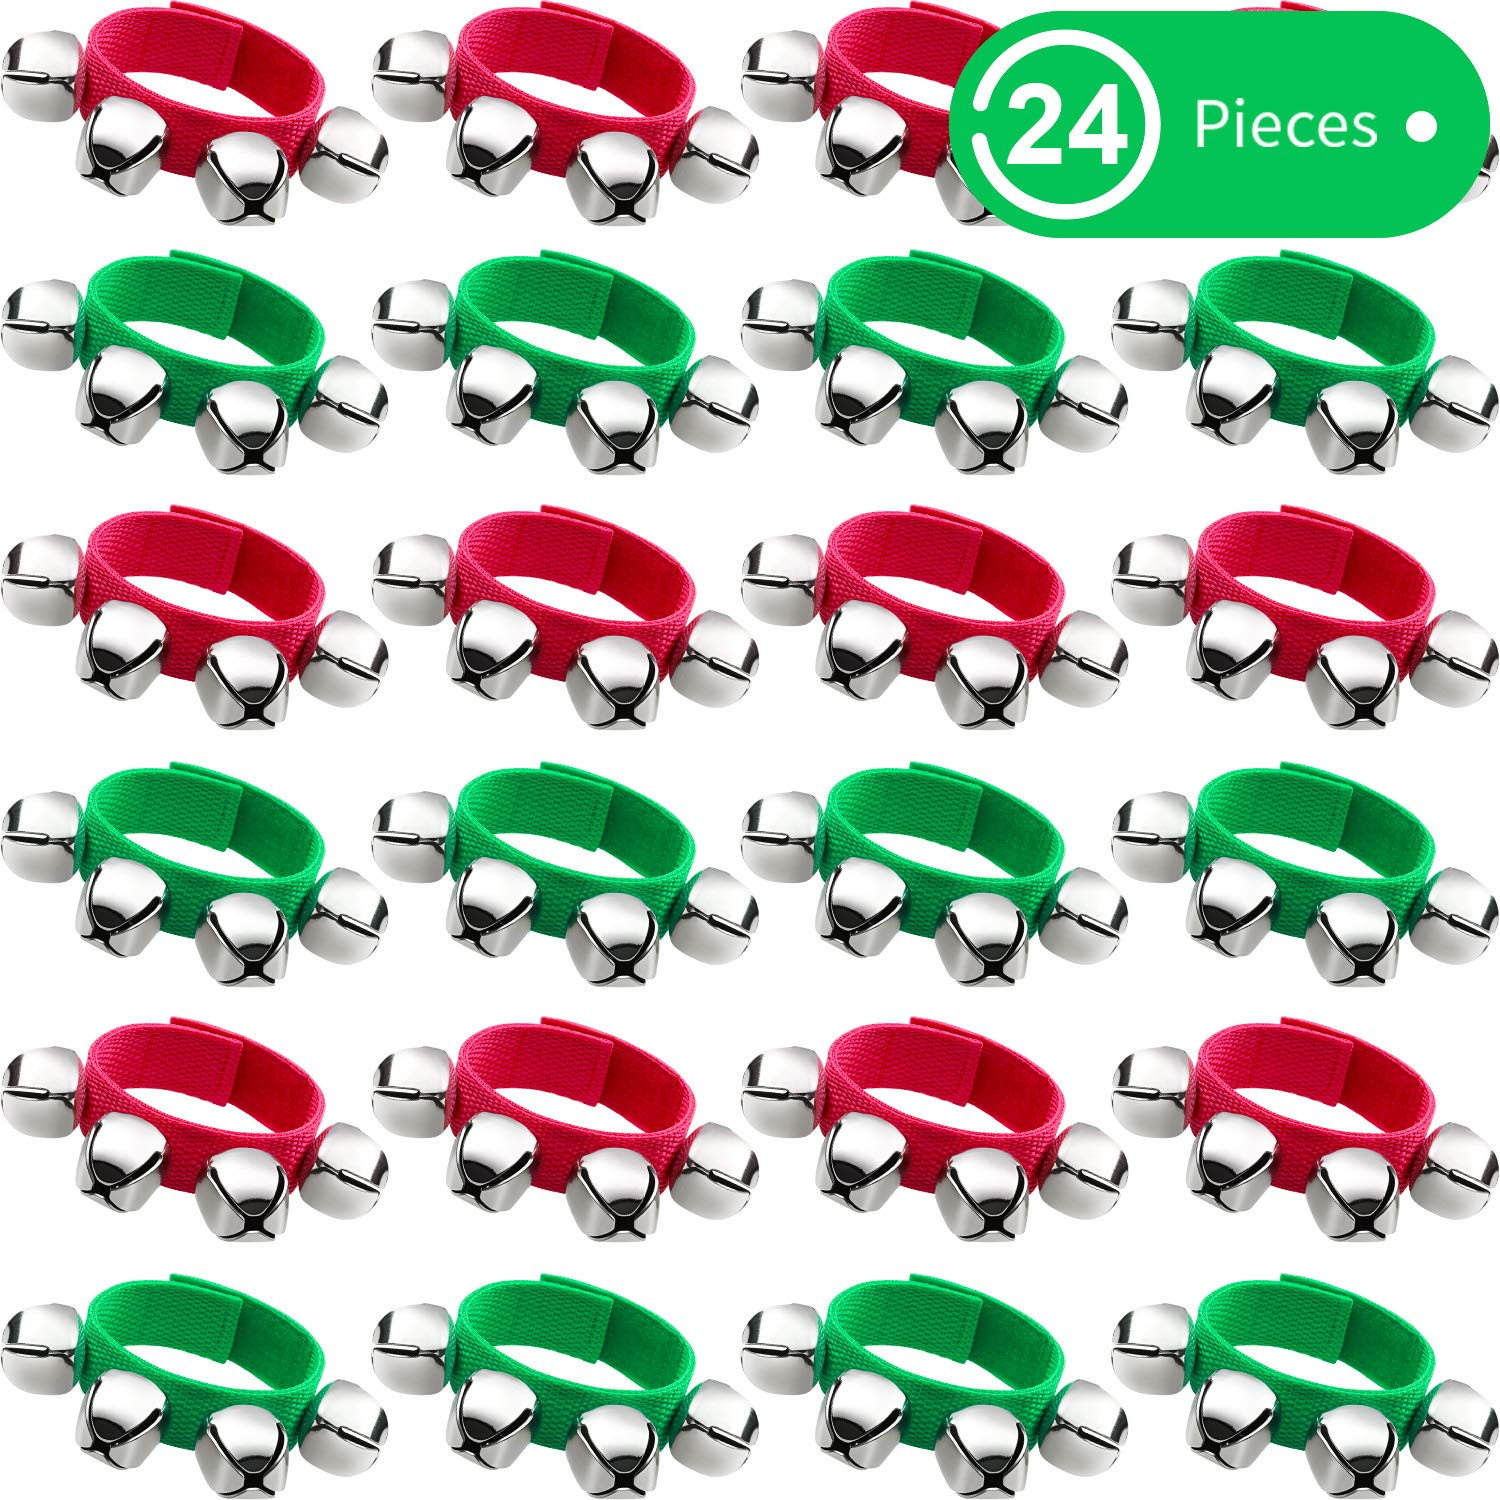 Band Wrist Bells Bracelets Jingle Musical Ankle Bells Rhythm Toys Instrument Percussion Party Favors for Christmas School Children Kids (24 Pieces, Red and Green) by BBTO